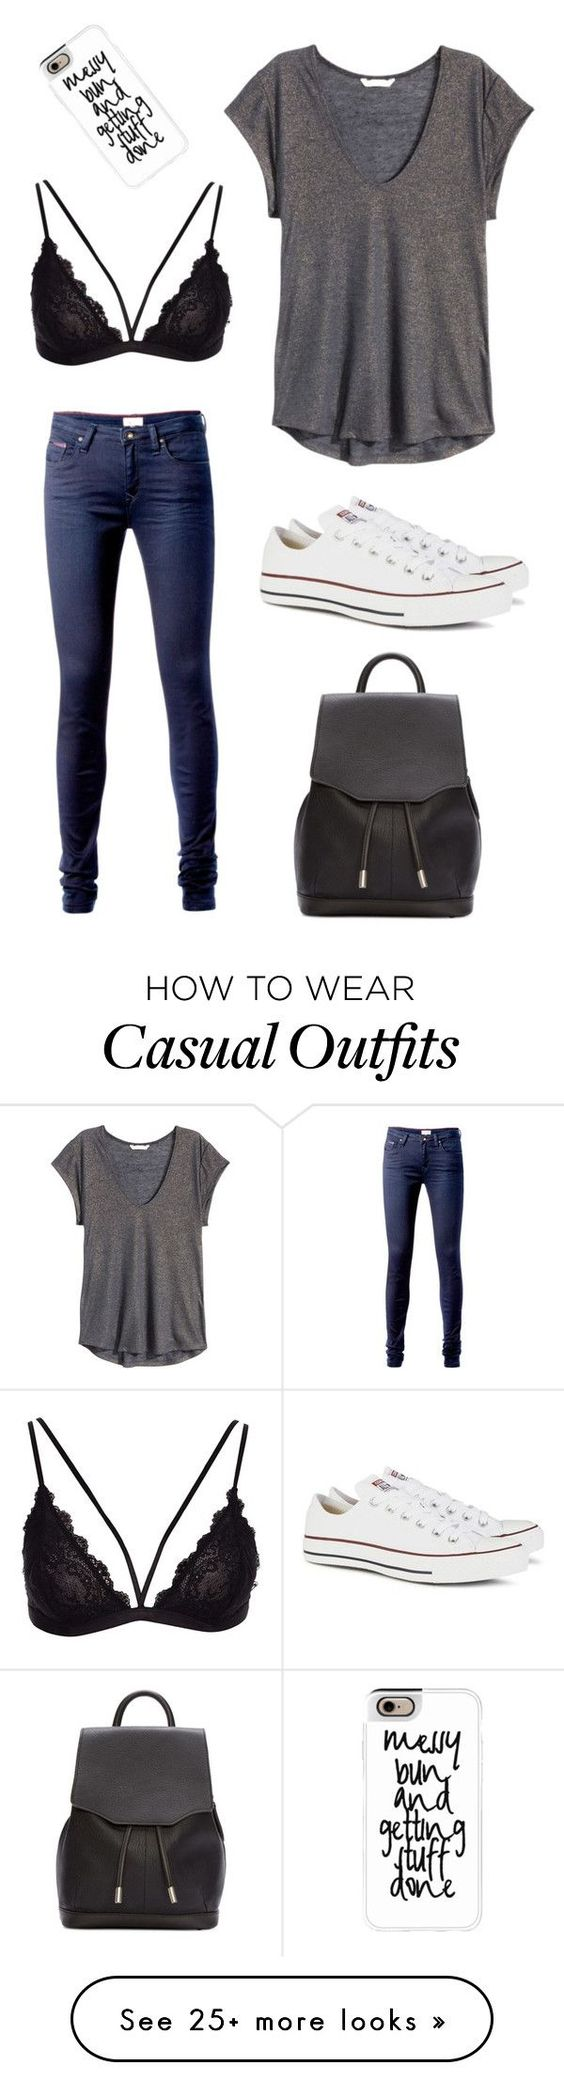 """Casual"" by caro-stegherr on Polyvore featuring Tommy Hilfiger, H&M, Converse, Casetify and rag & bone"